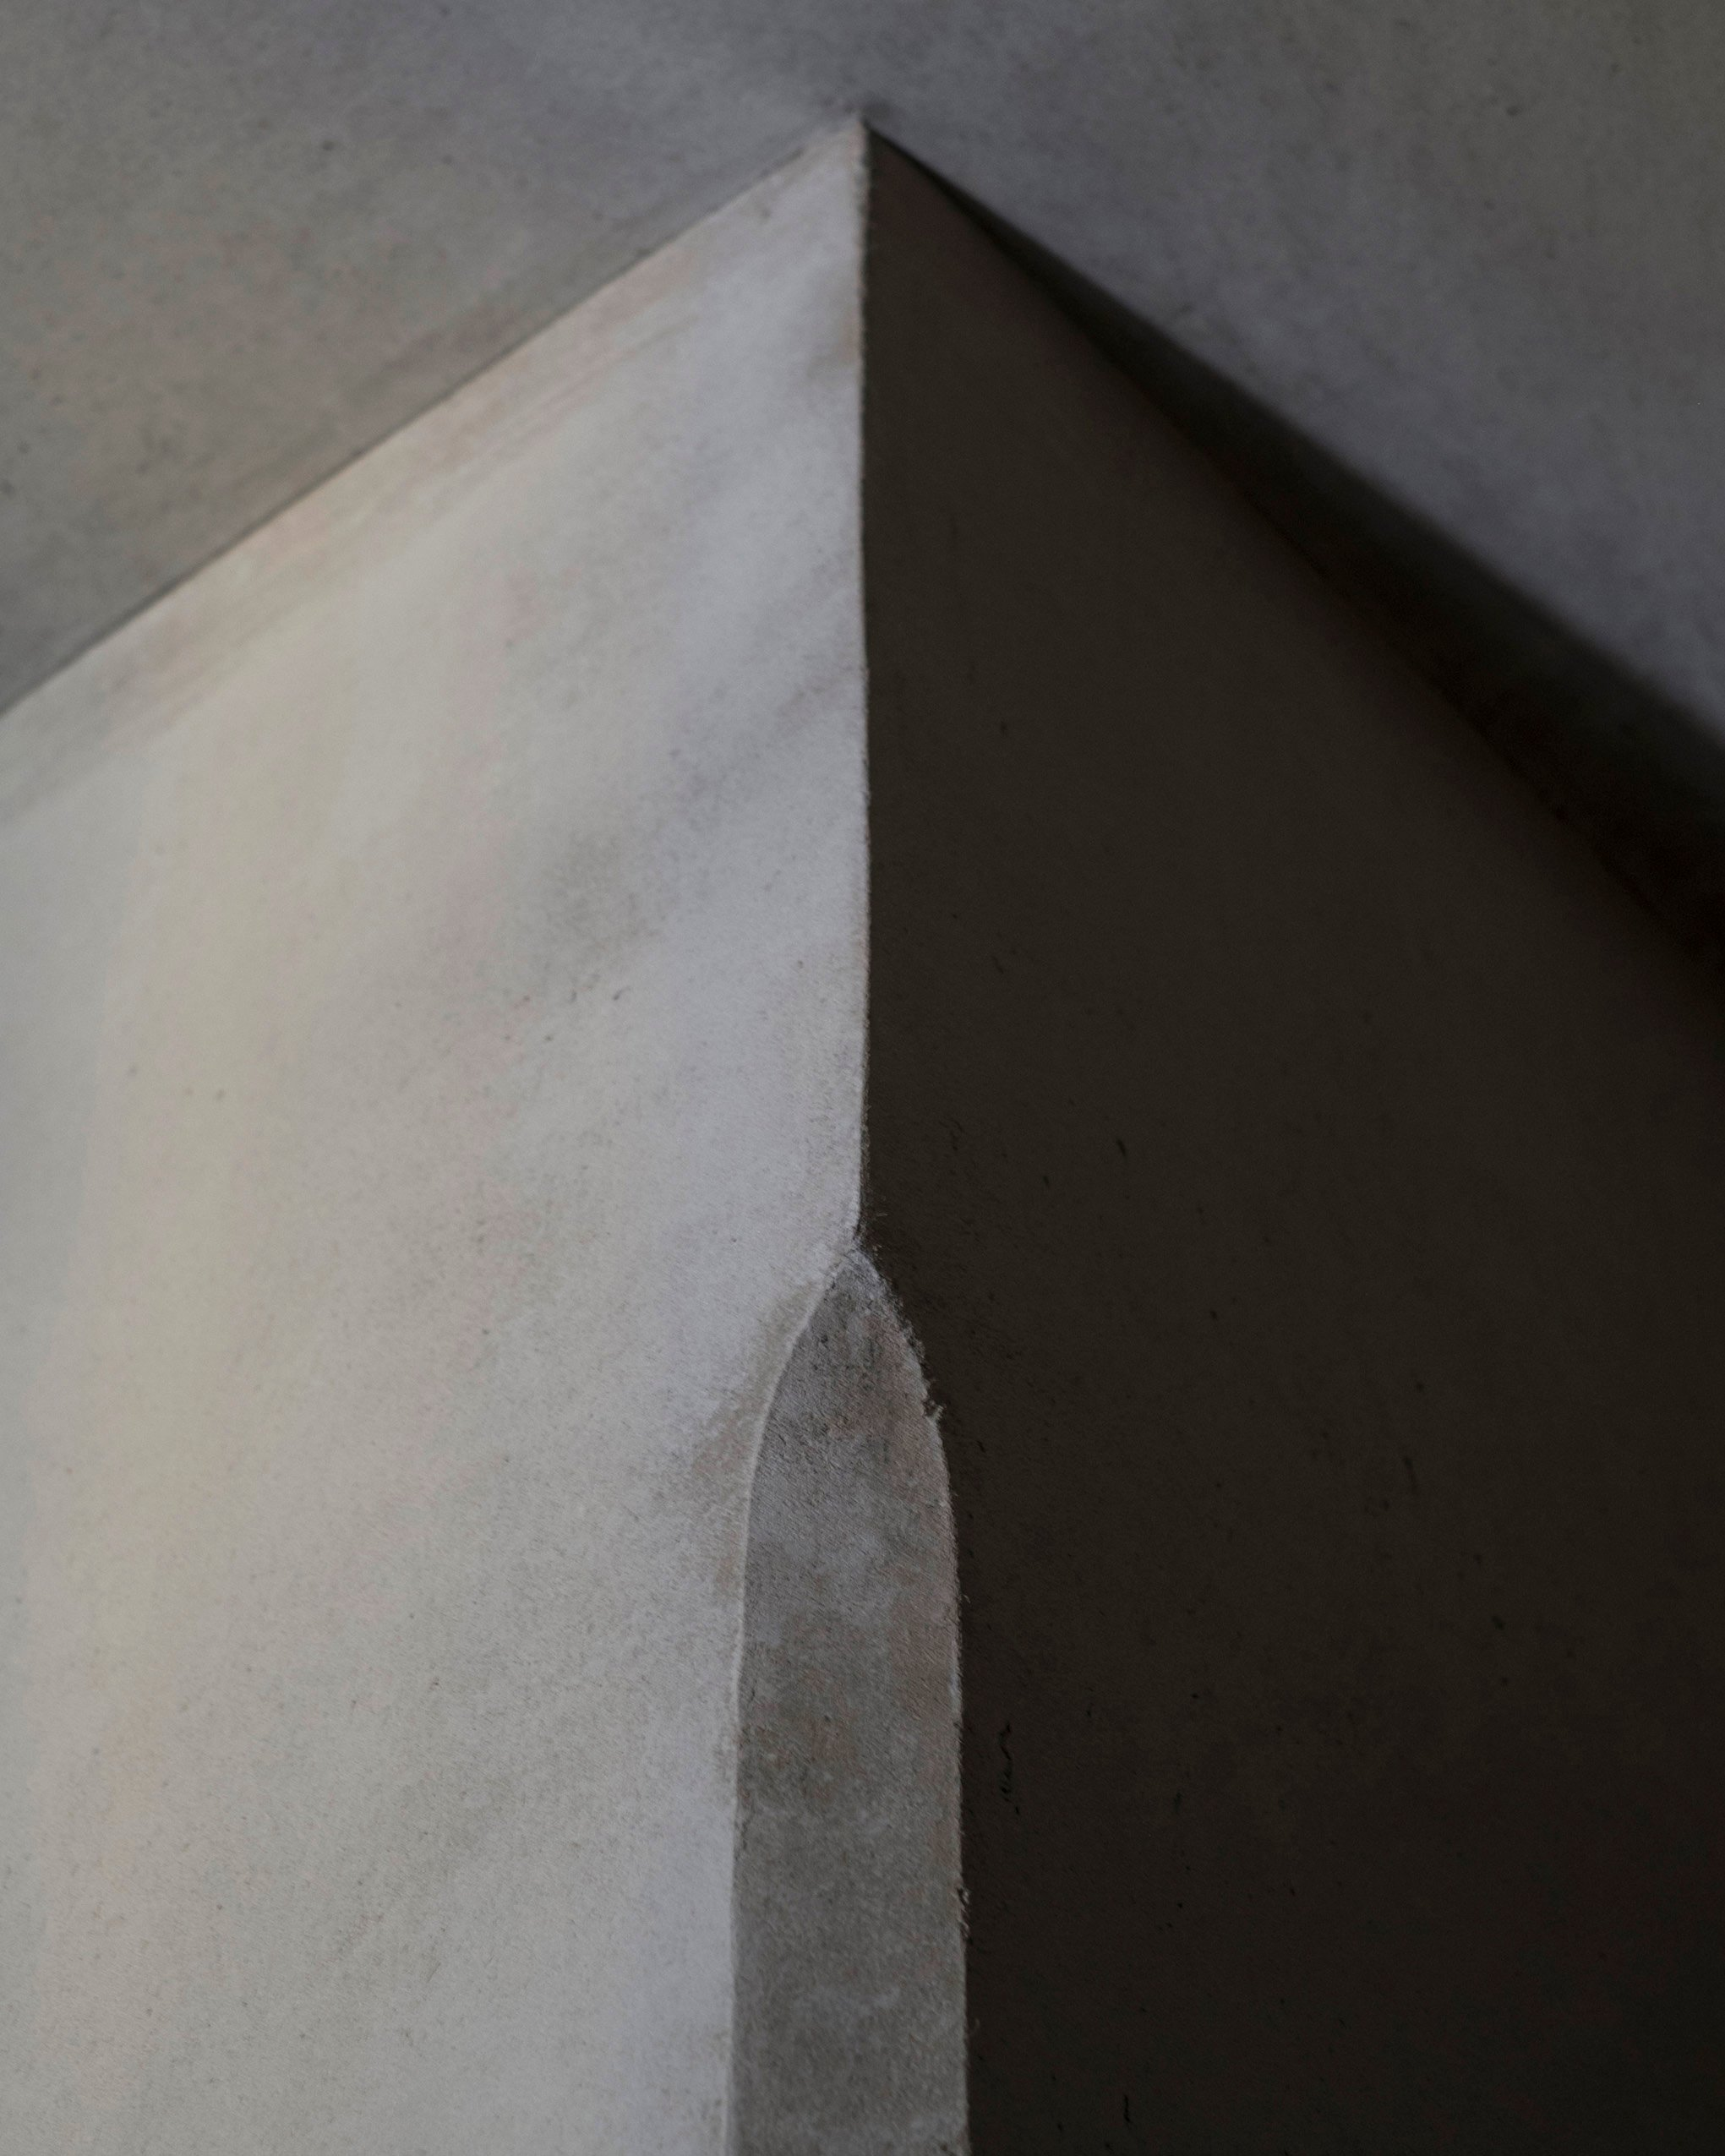 Detail of Wall Corners